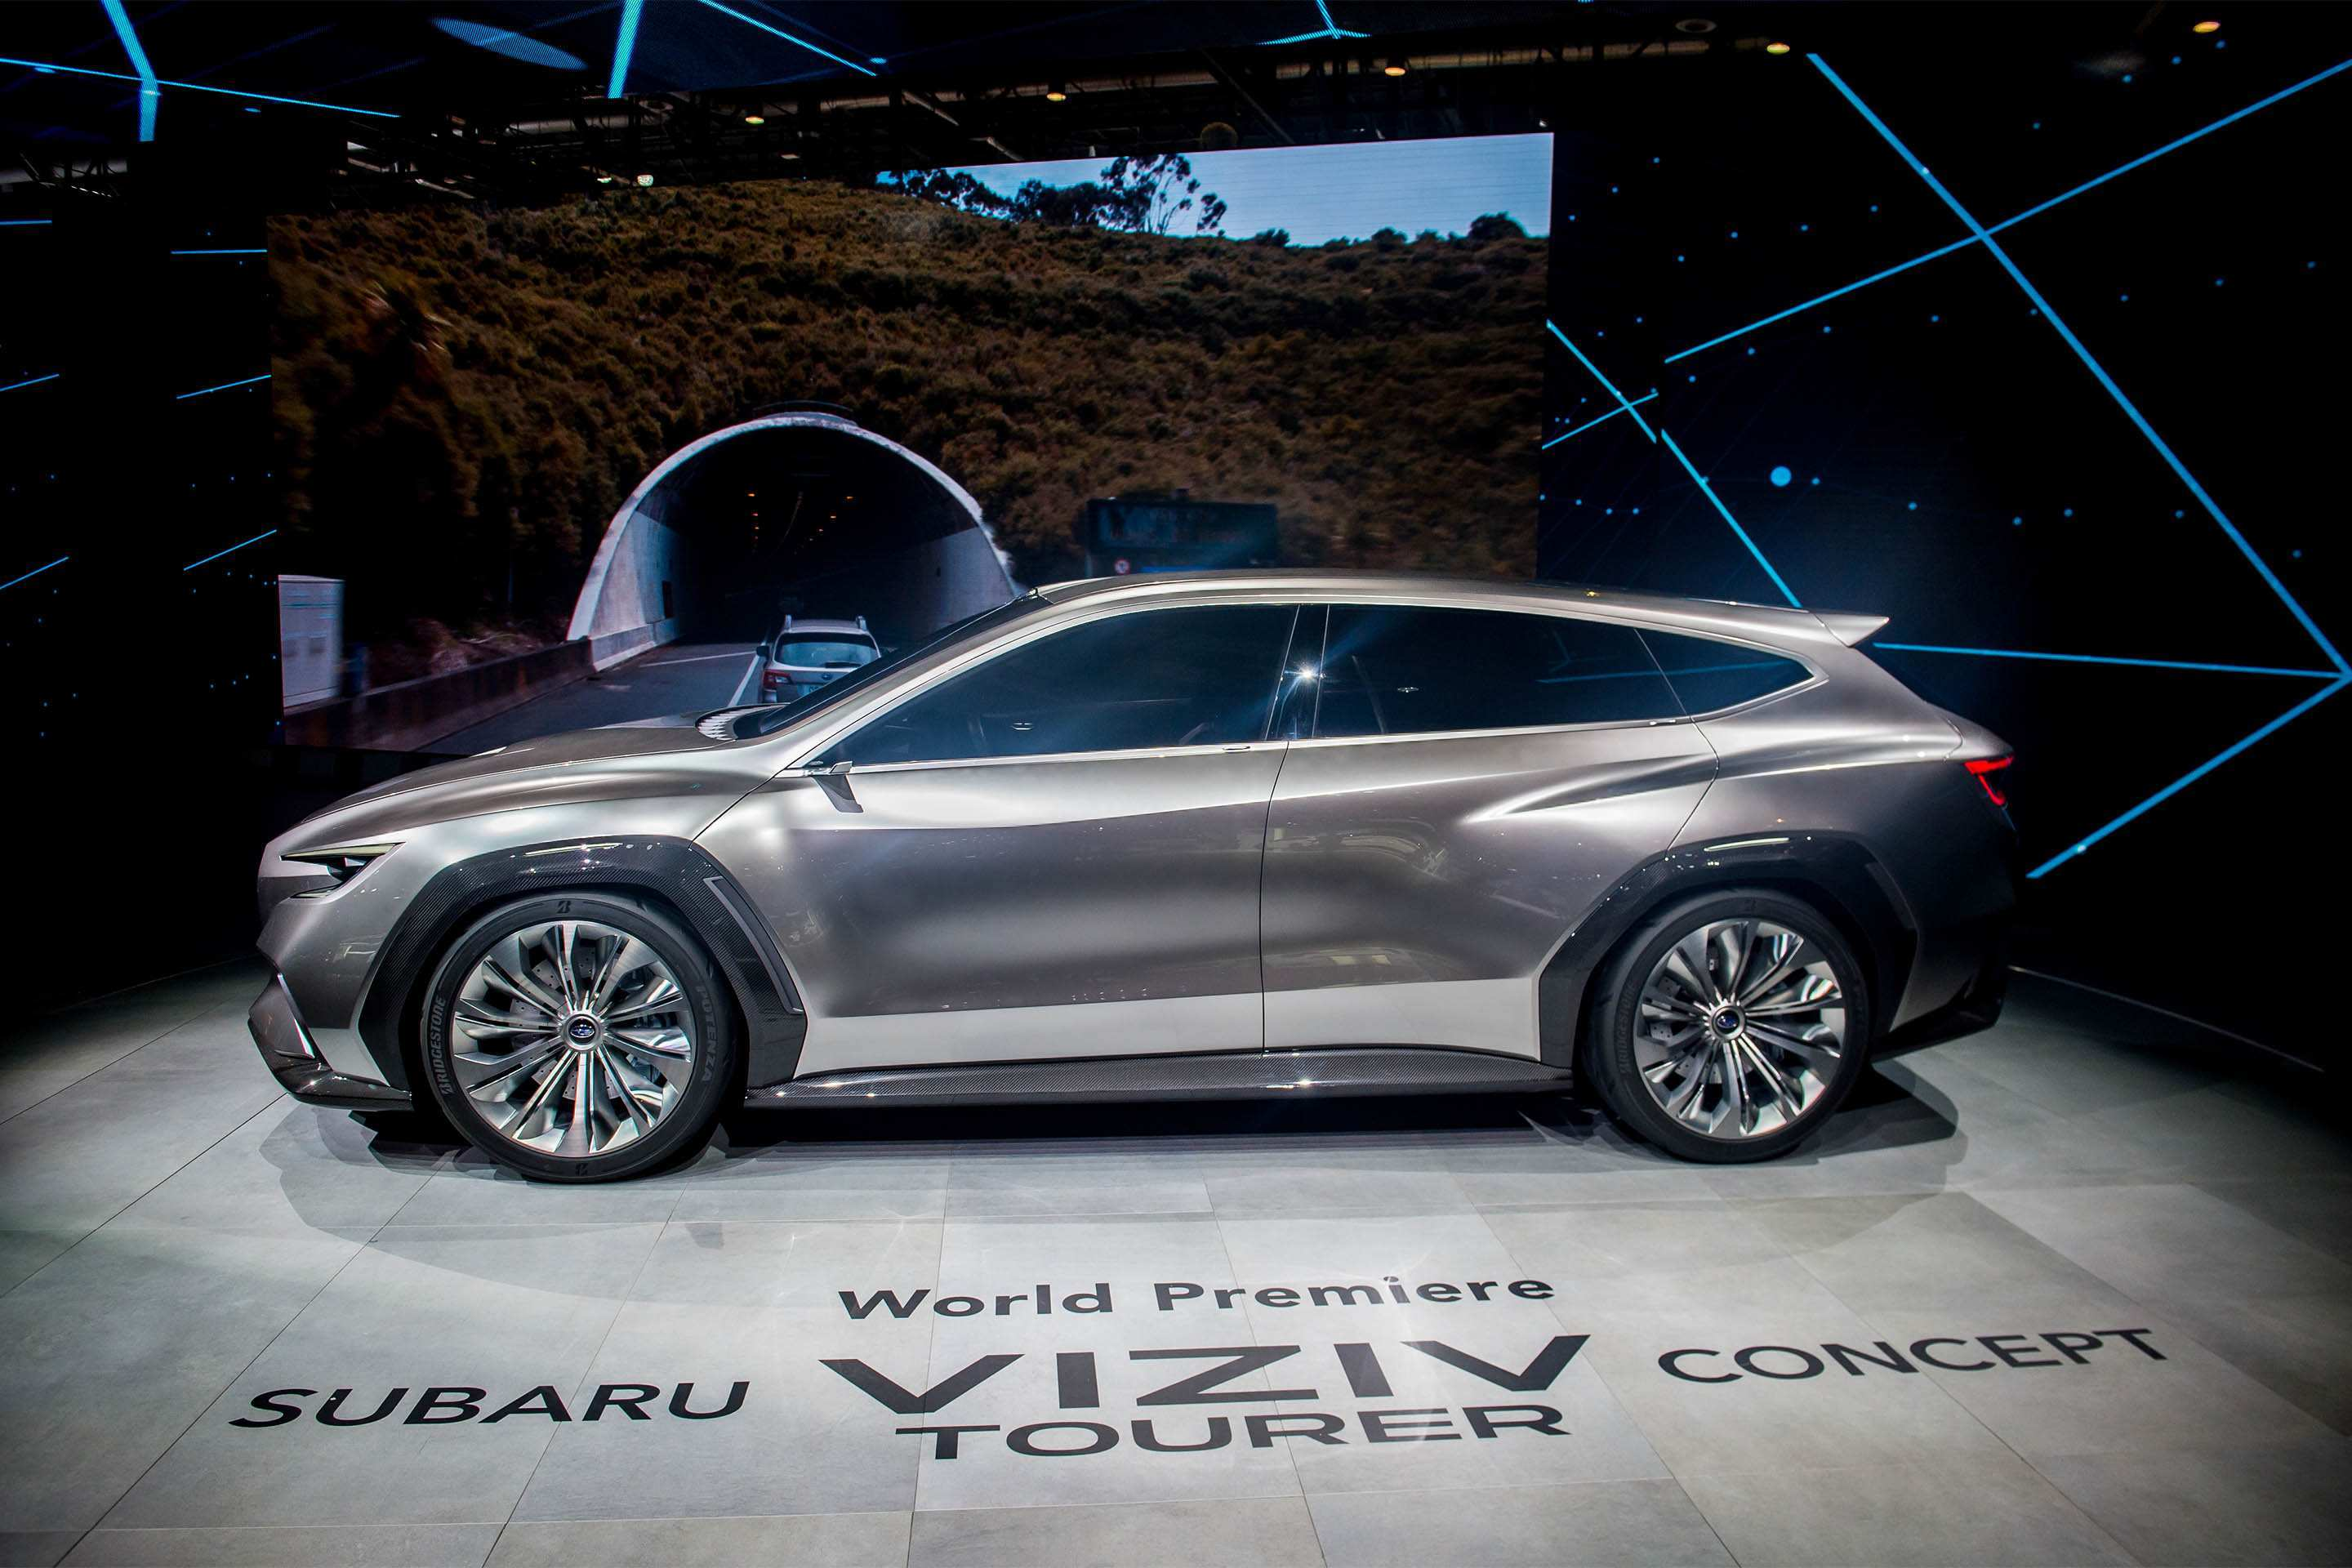 95 Best Review 2020 Subaru Outback Concept Redesign by 2020 Subaru Outback Concept